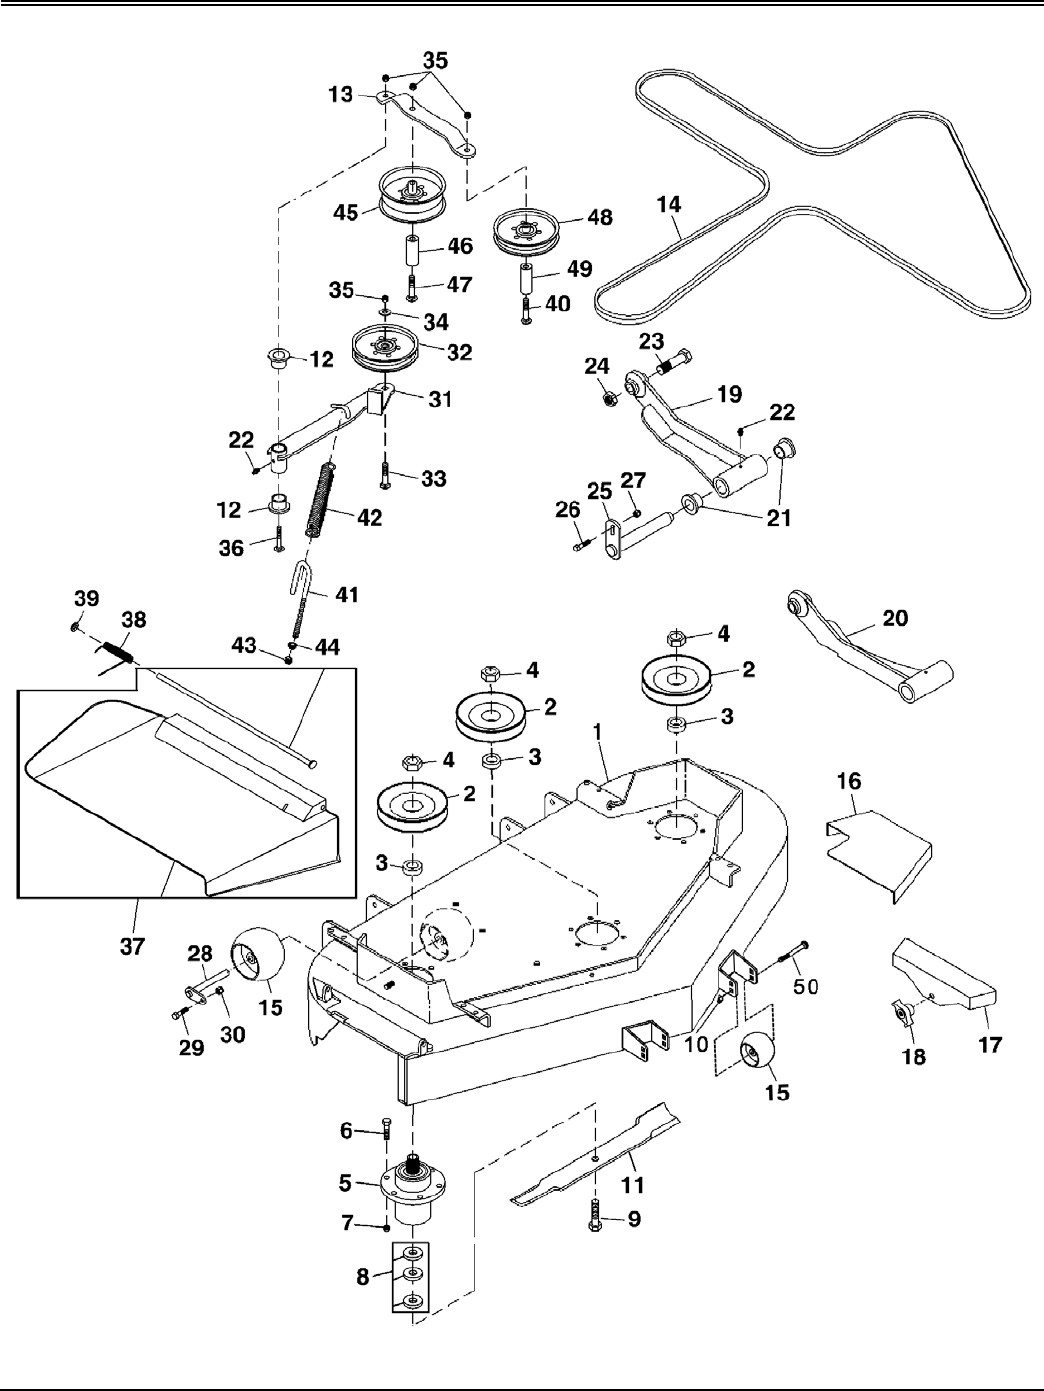 Kawasaki Fc150v Vertical Engines 552 furthermore Flywheel Ignition Coil likewise Wiring A Briggs And Stratton Engine moreover 6ay2s T1560 Mower Fc420v Engine Two Weeks Ago also Kawasaki Fh580v 19hp Engine Diagram. on kawasaki fc420v engine